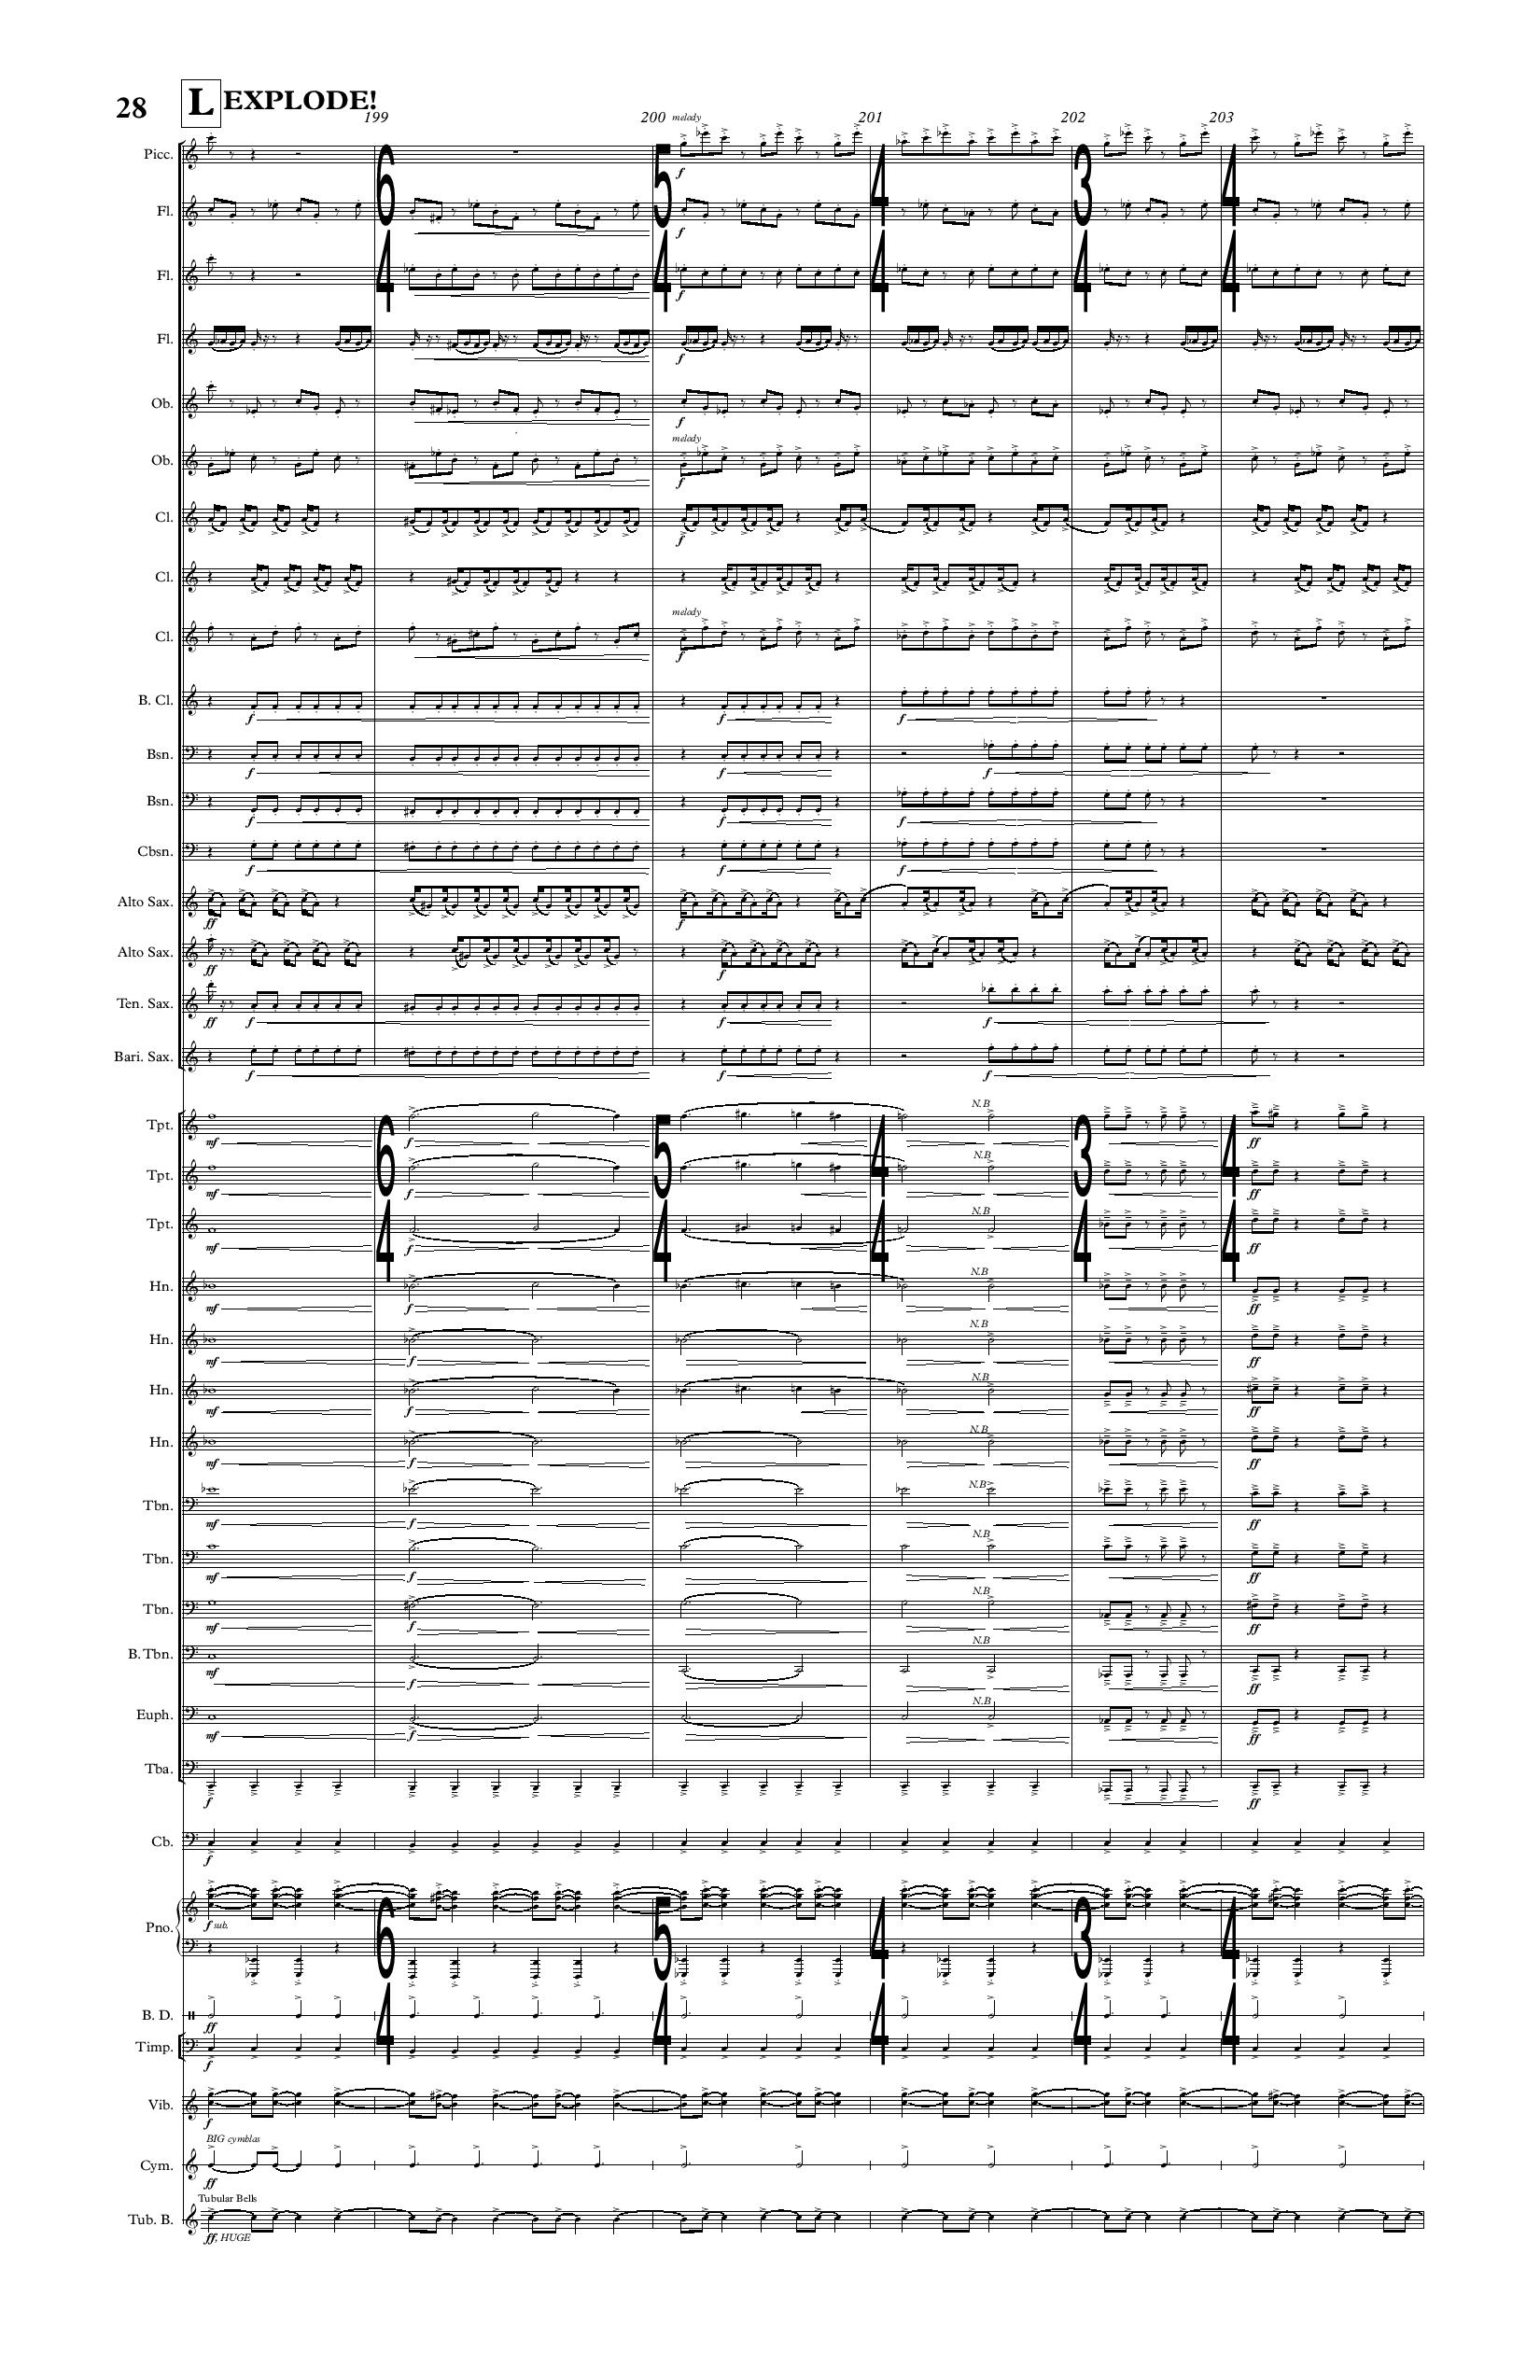 Rupture Full Transposed Score - Full Score (1)-page-028